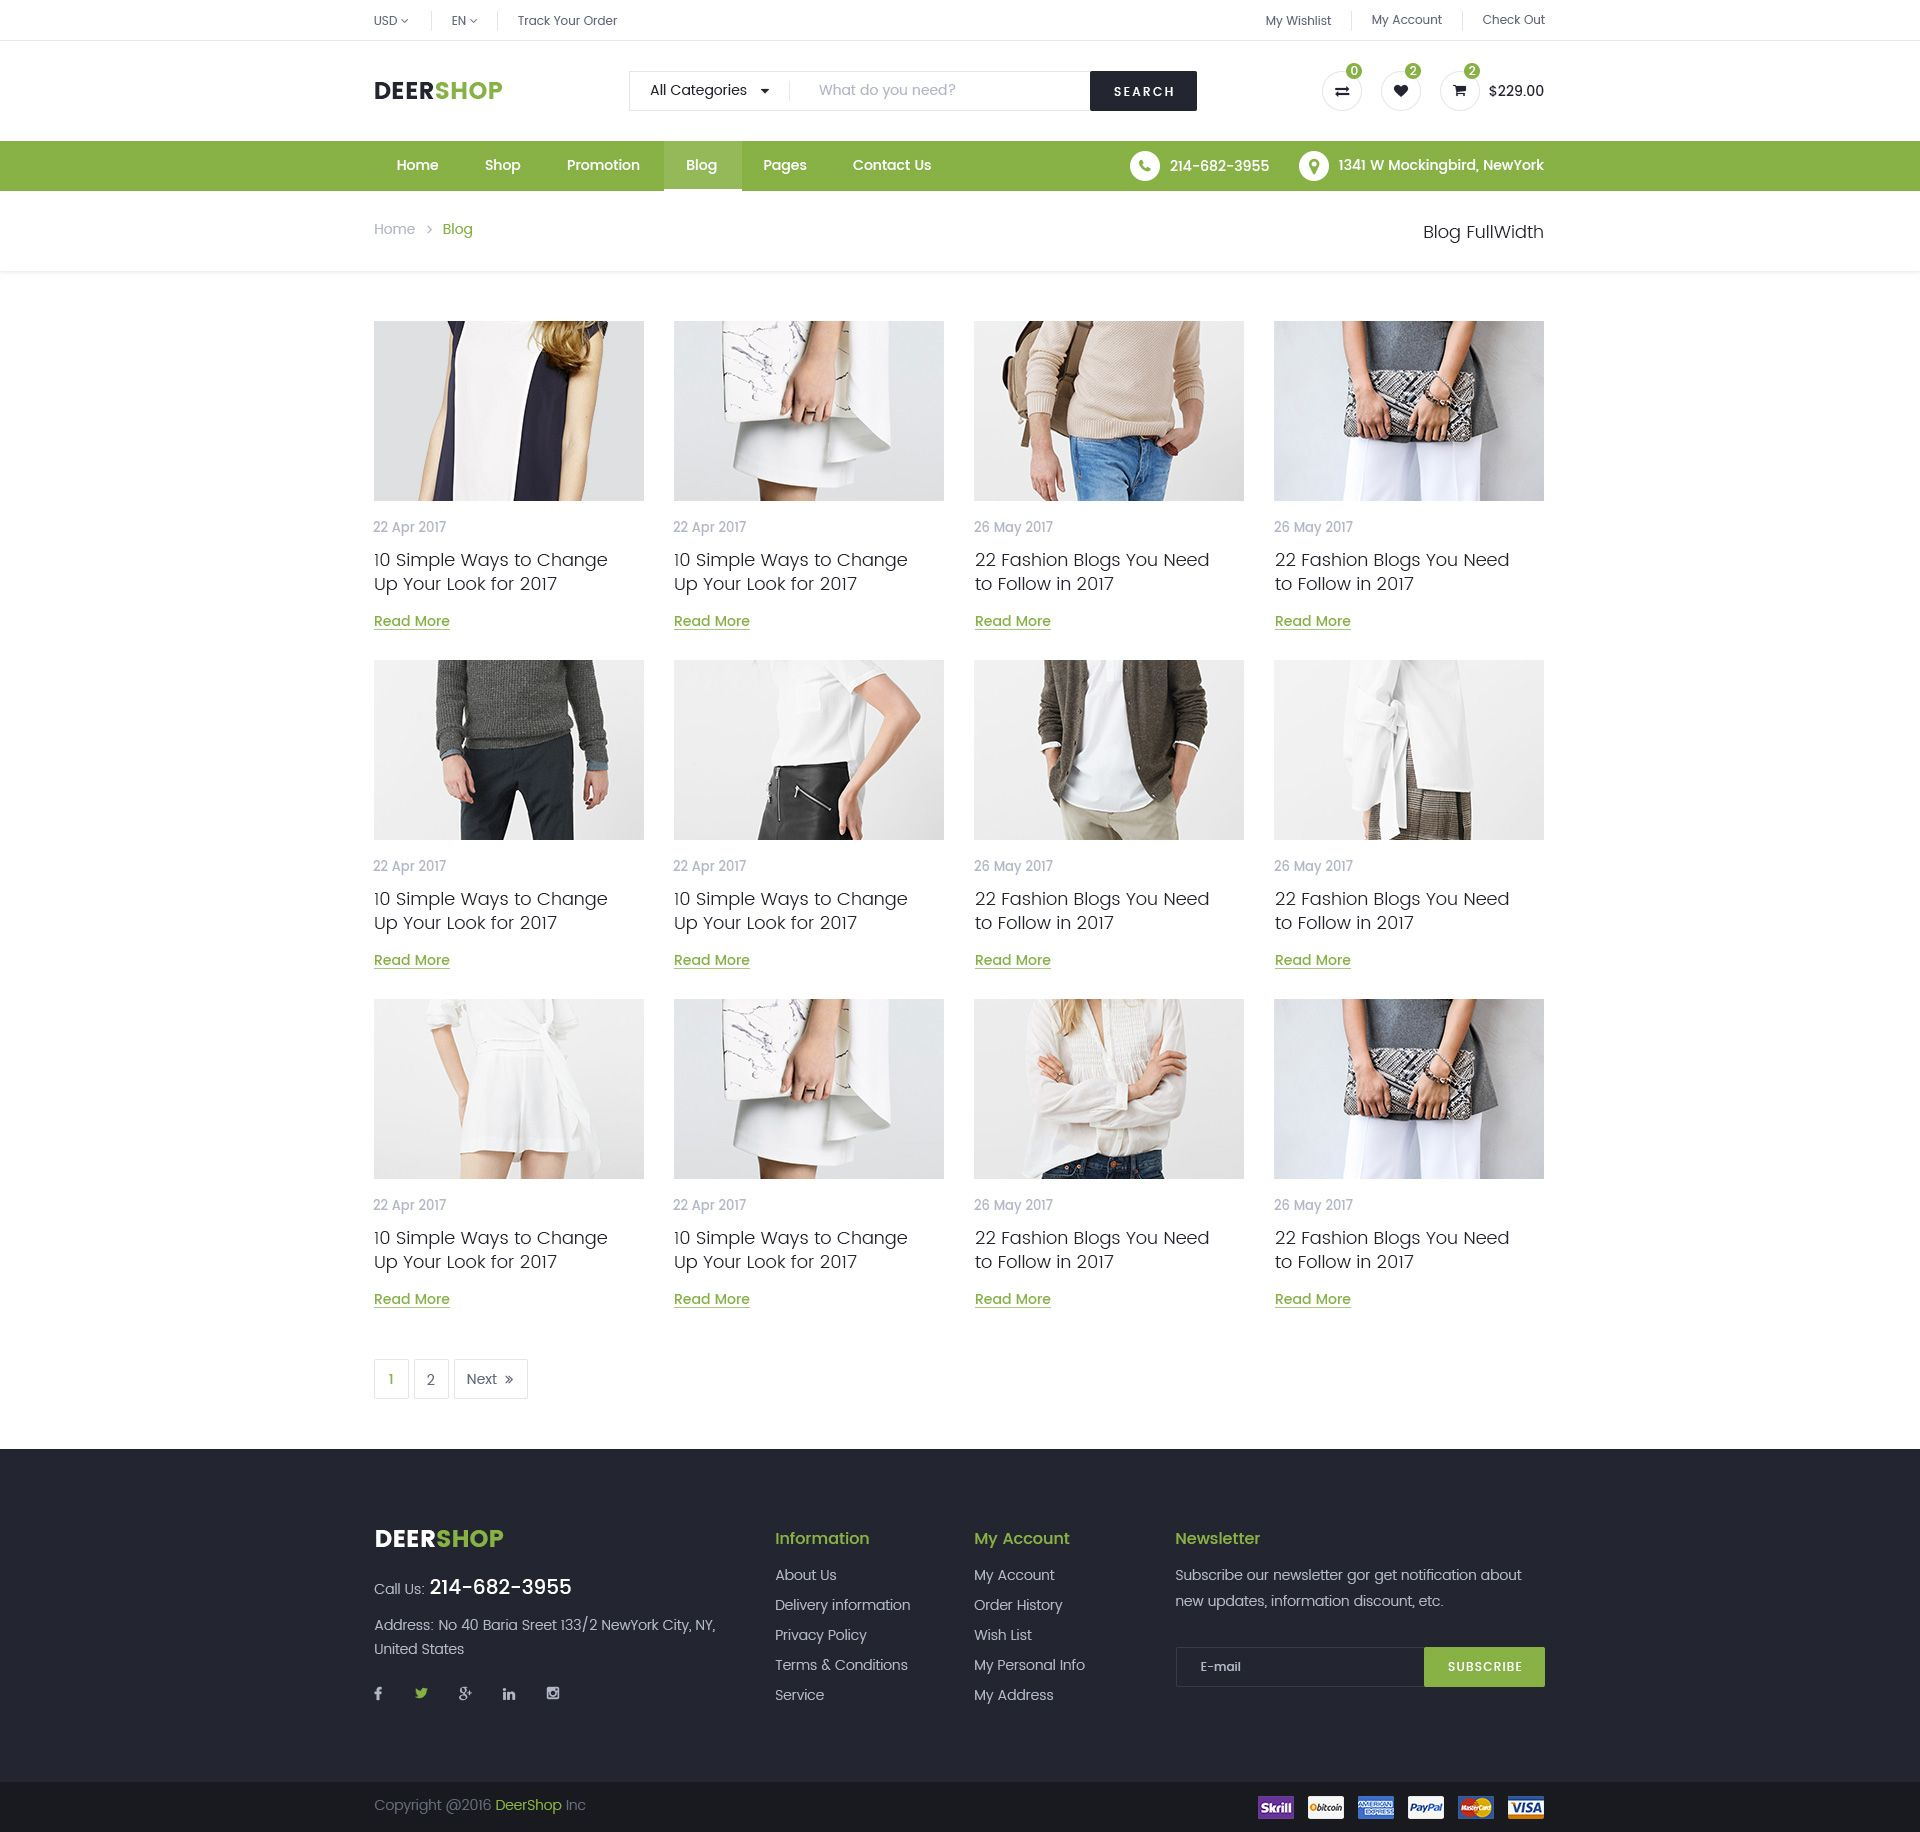 Minimal Responsive Website Template Psd For Free Download: DeerShop Multi-Purpose Responsive Ecommerce PSD Template